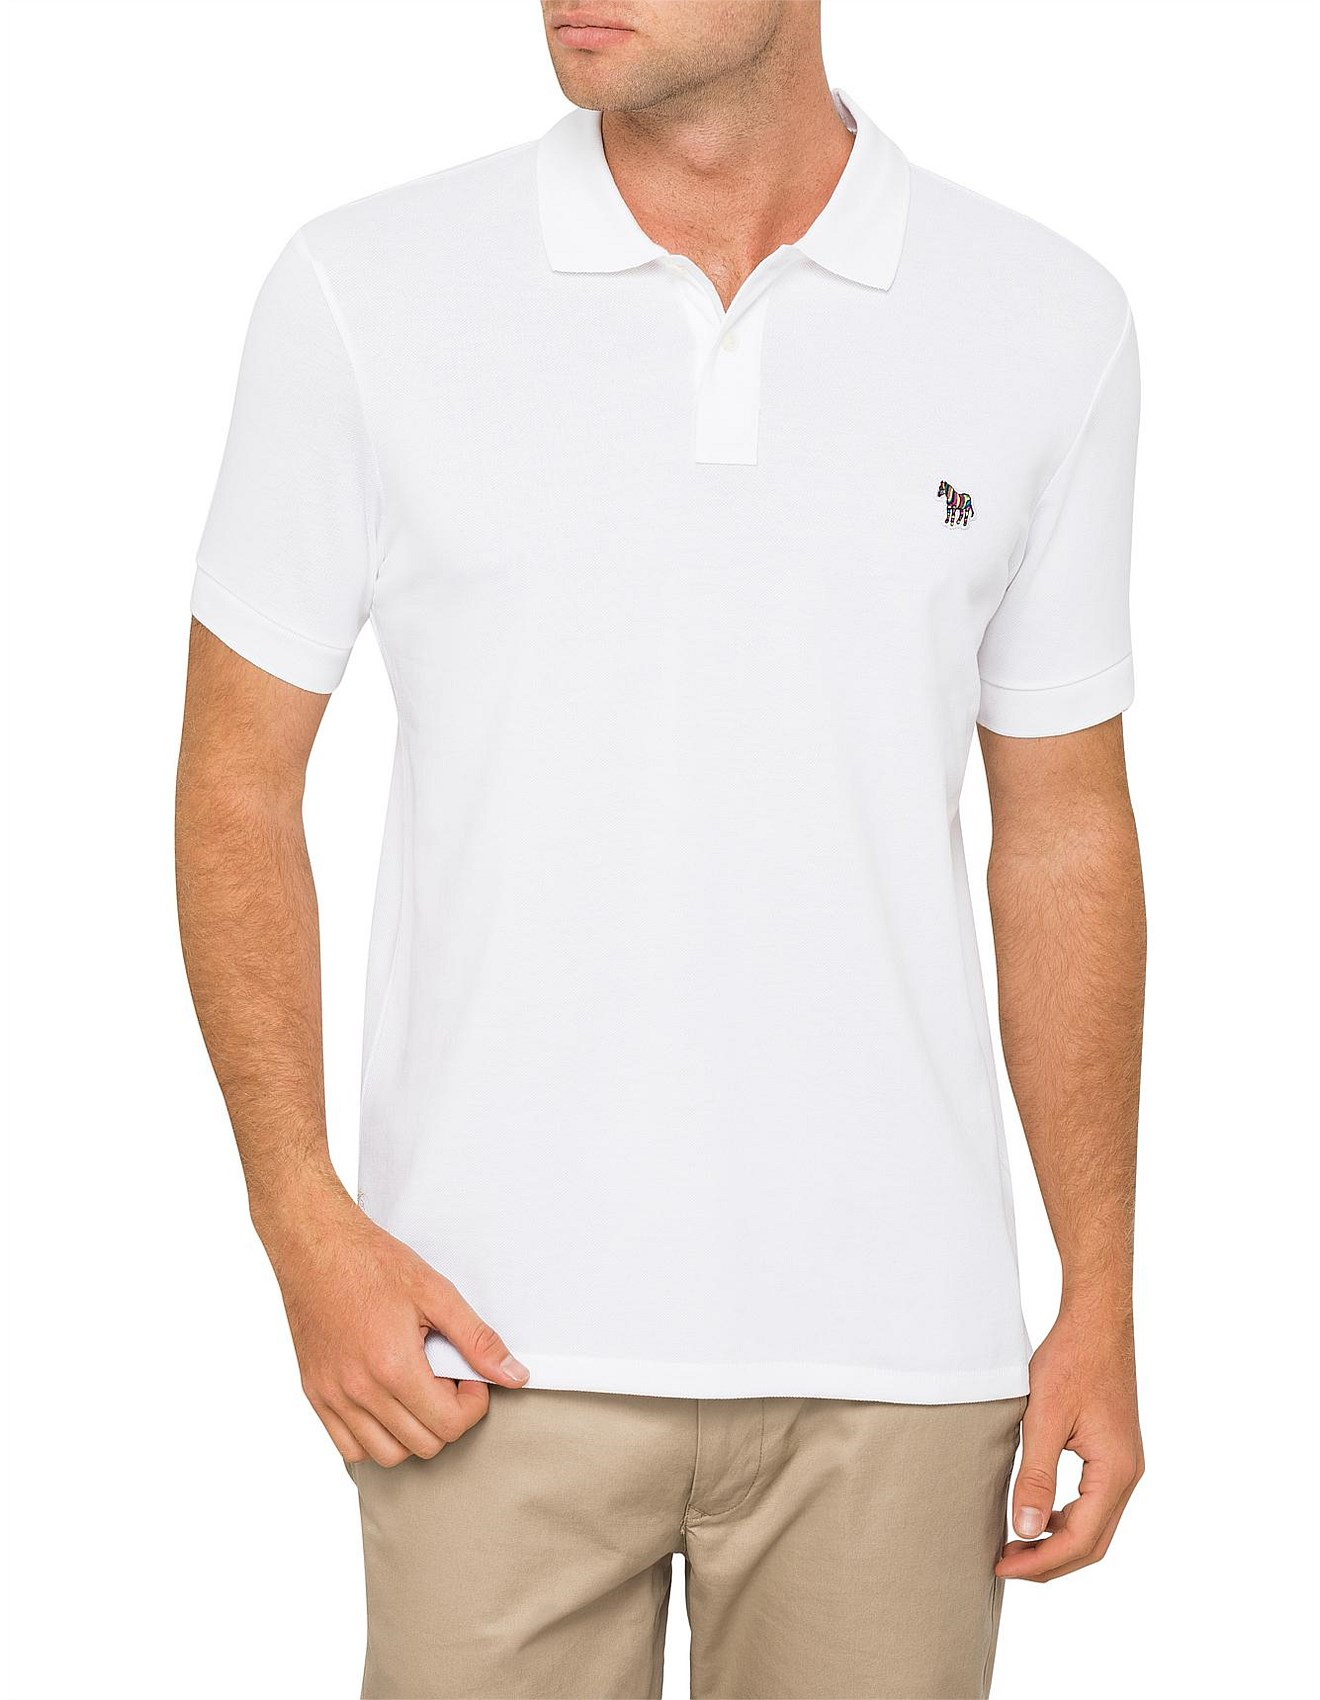 340f0f007072bc PS by PAUL SMITH Reg Fit Zebra SS Polo Shirt